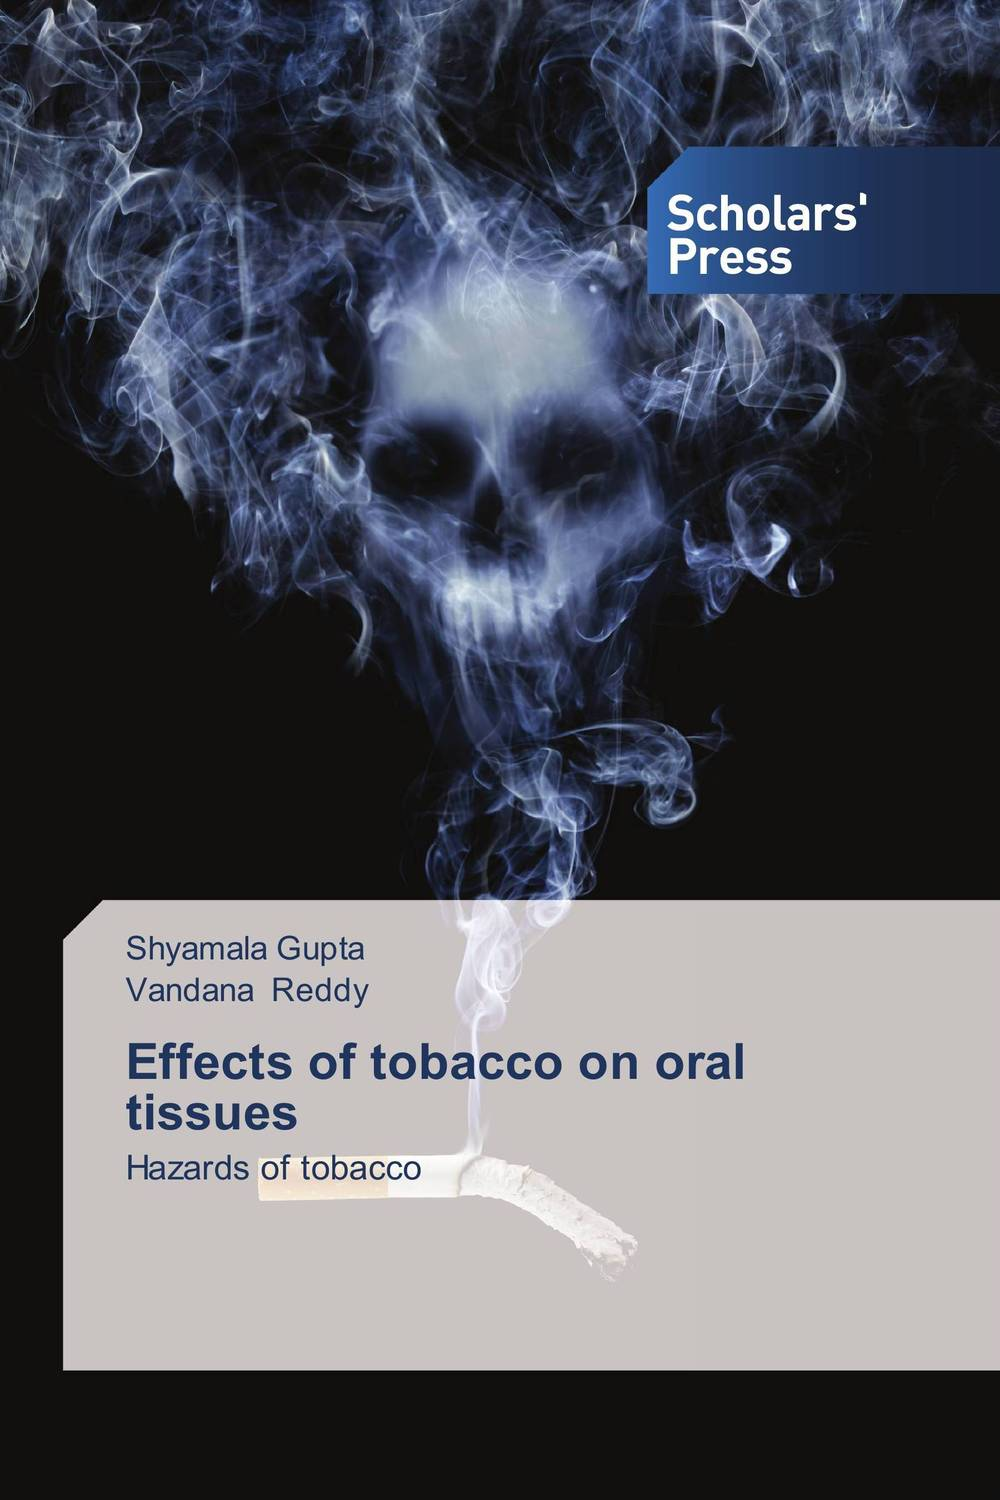 Effects of tobacco on oral tissues effects of tobacco on oral tissues